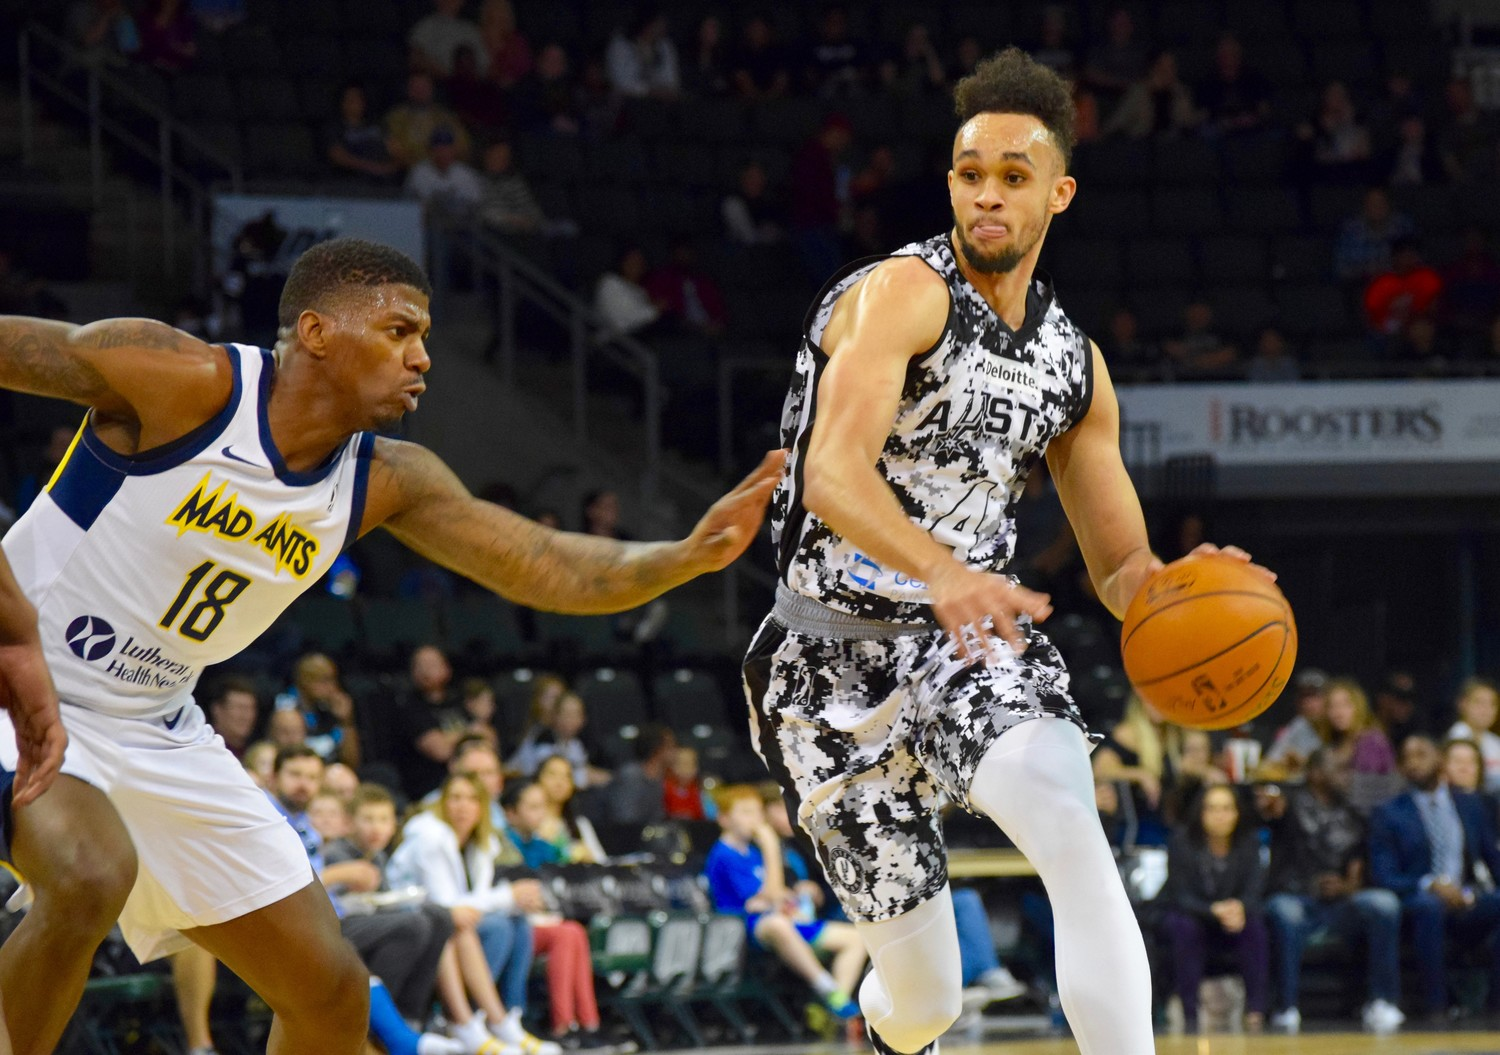 Derrick White' 17.7 points per game average rank second amongst players that have seen the G-League court at least 15 times this season.